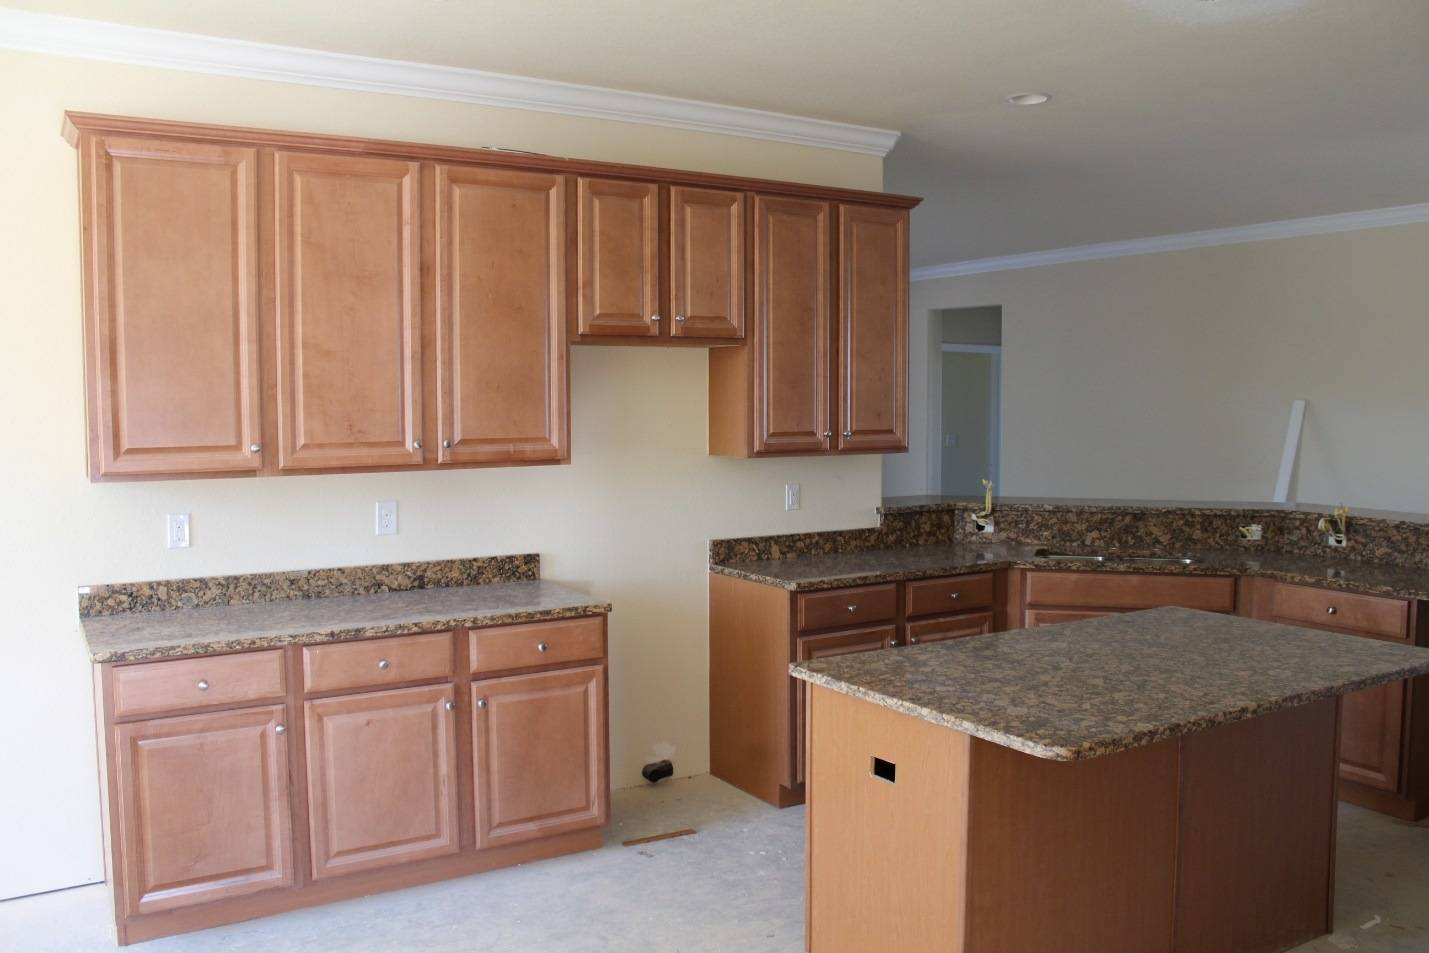 Install Kitchen Cabinets Or Tile Floors First Thefloorsco & Install Cabinets Or Flooring First - Nagpurentrepreneurs